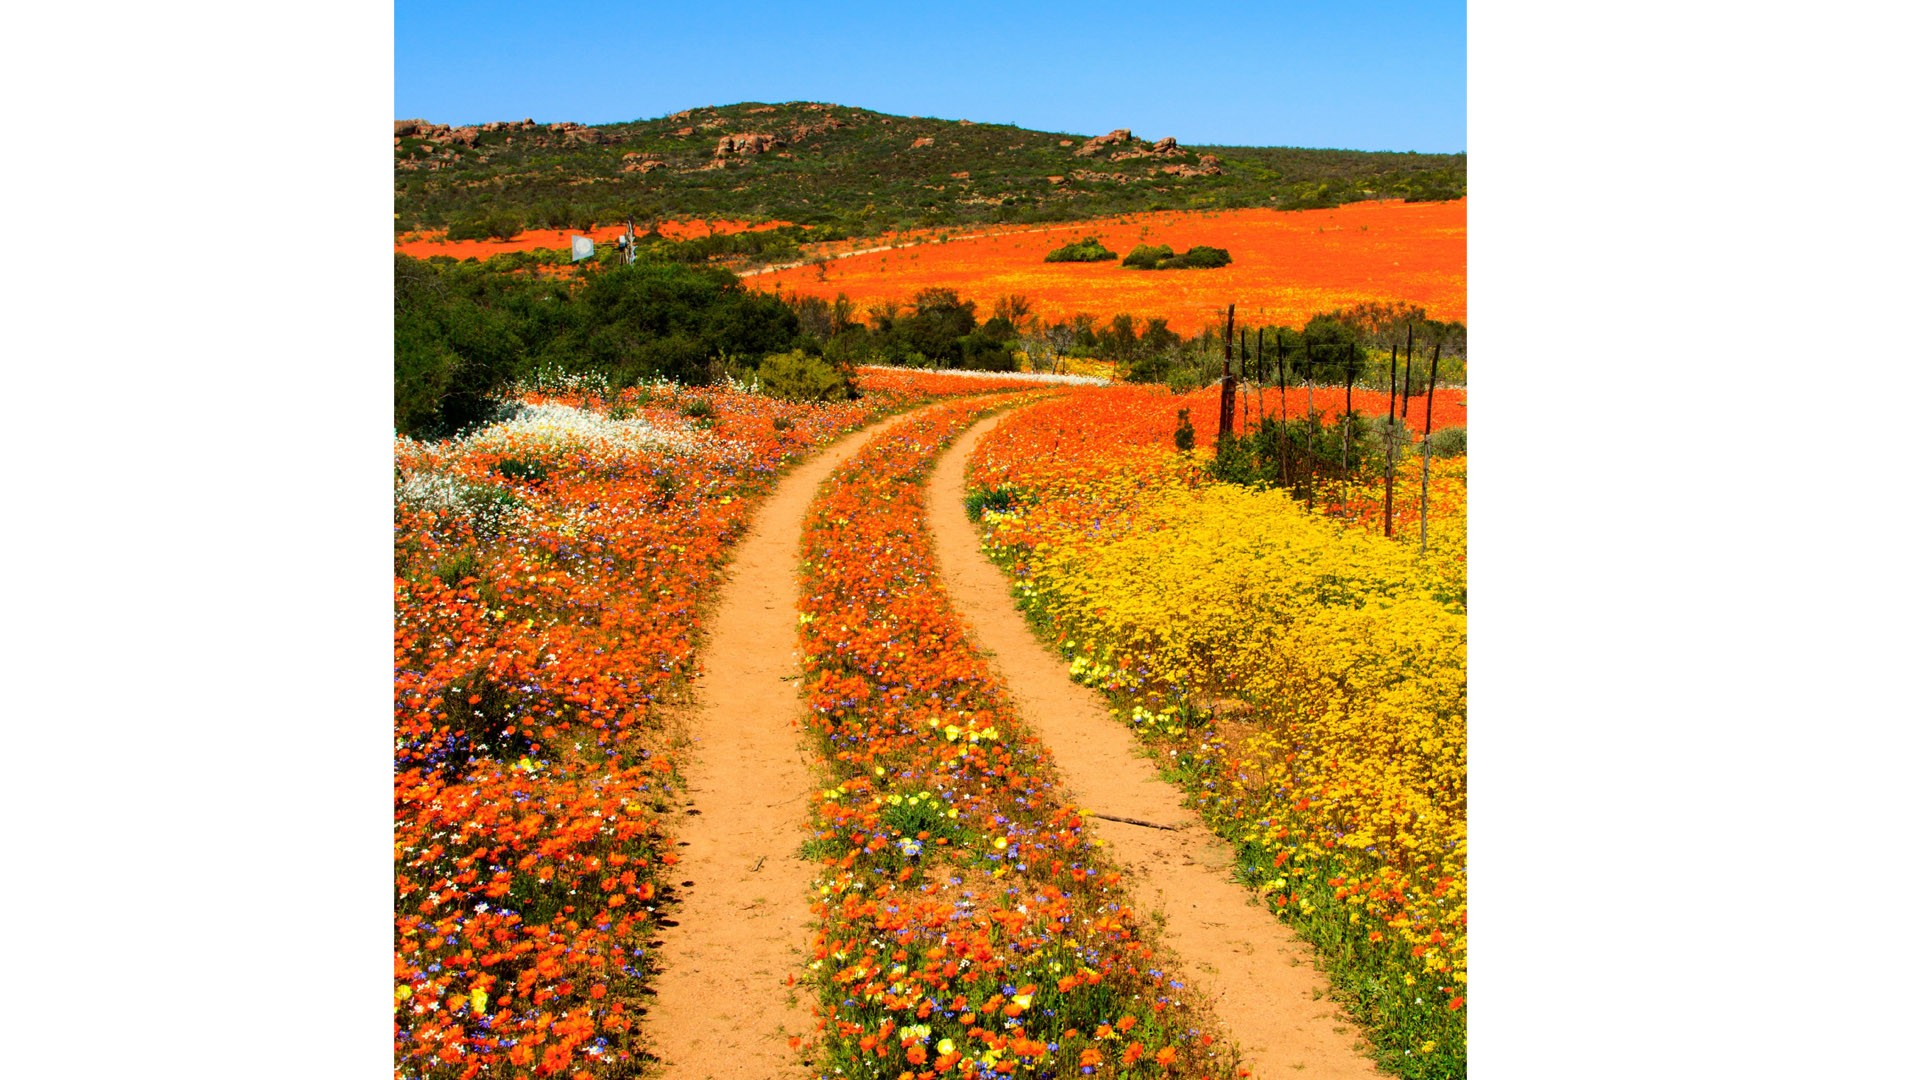 Track through the blooming flowers in Namaqualand